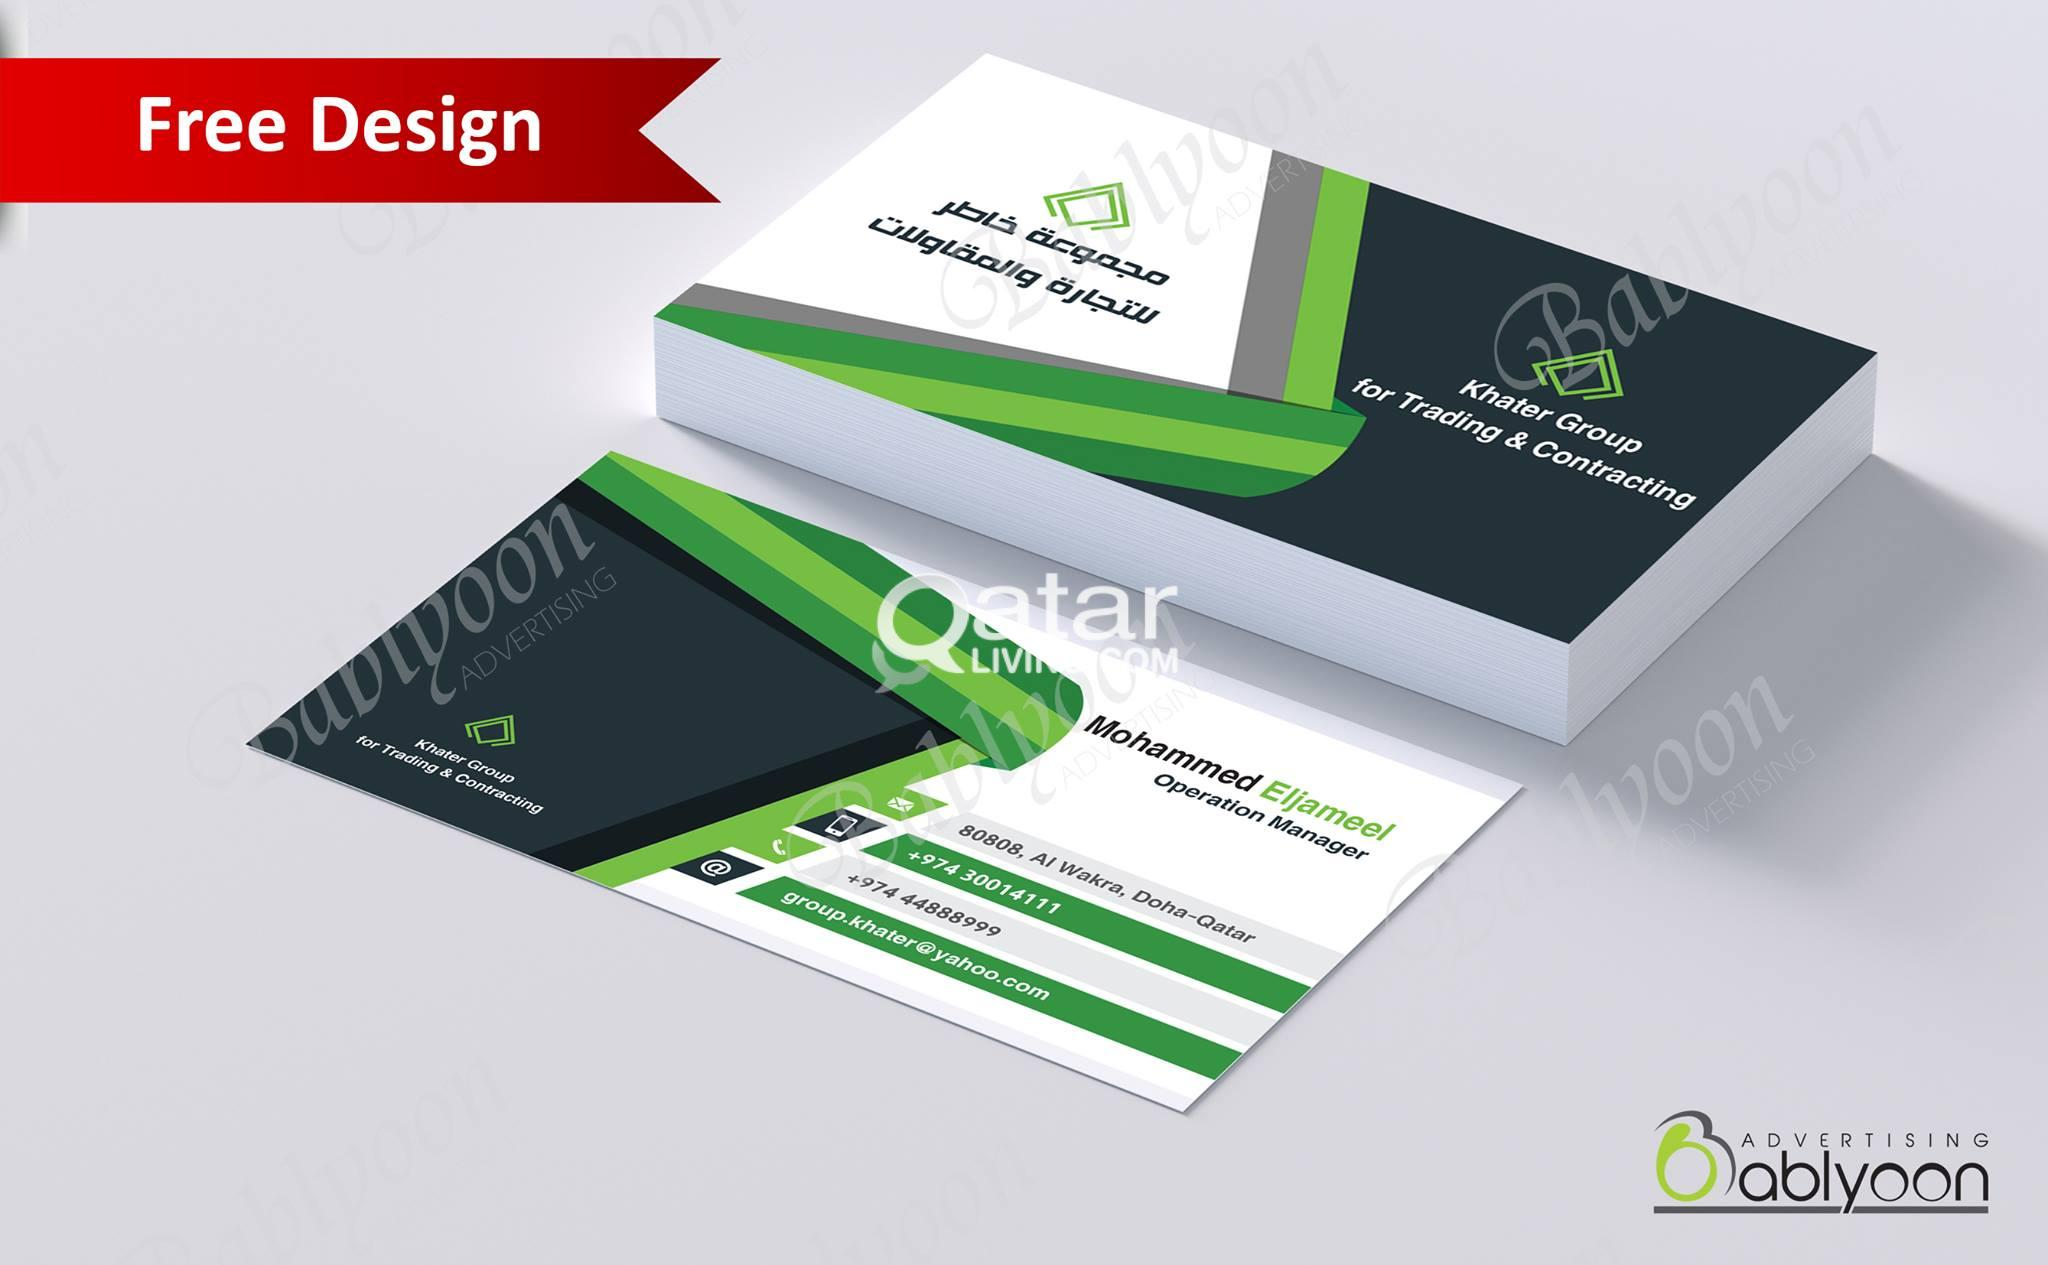 Business card printing within 15 minutes qatar living title title title title title title title information free design for business card reheart Choice Image